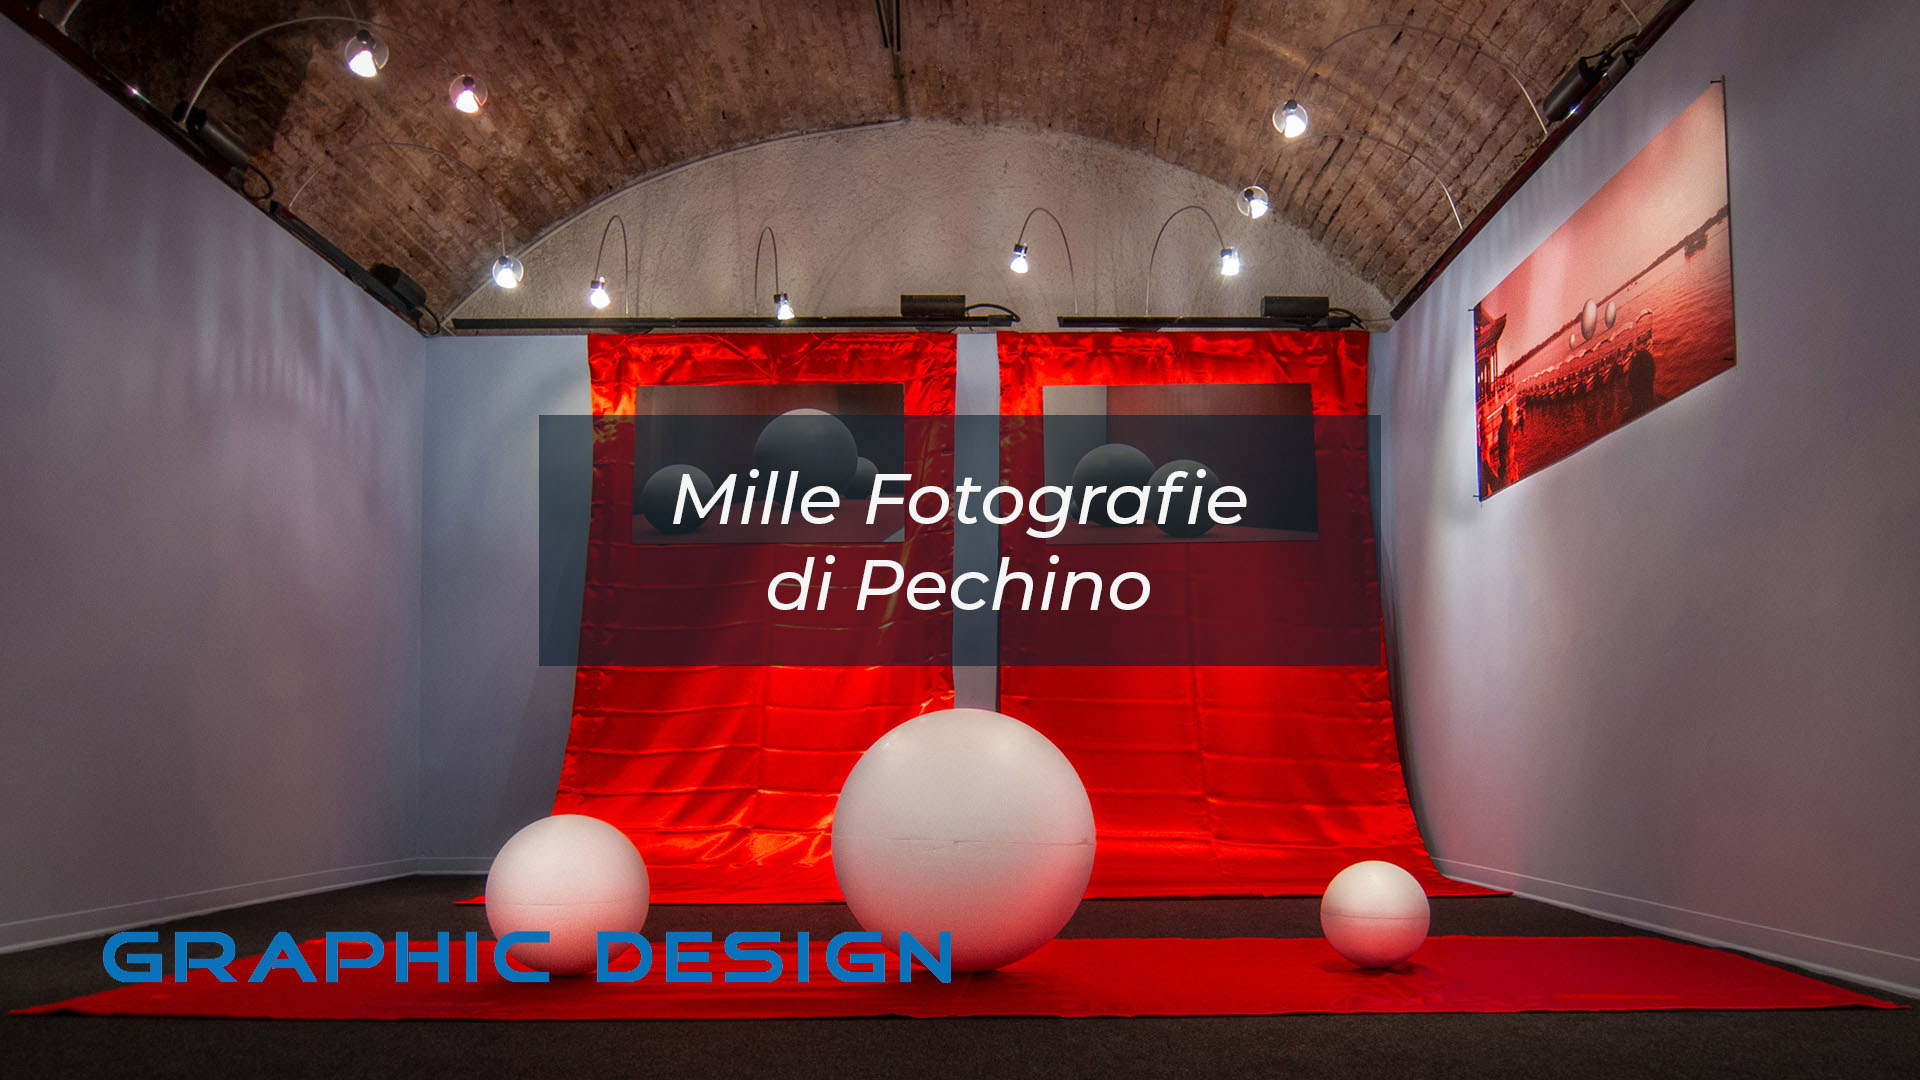 Graphic Design Mille Fotografie di Pechino by DiMMD